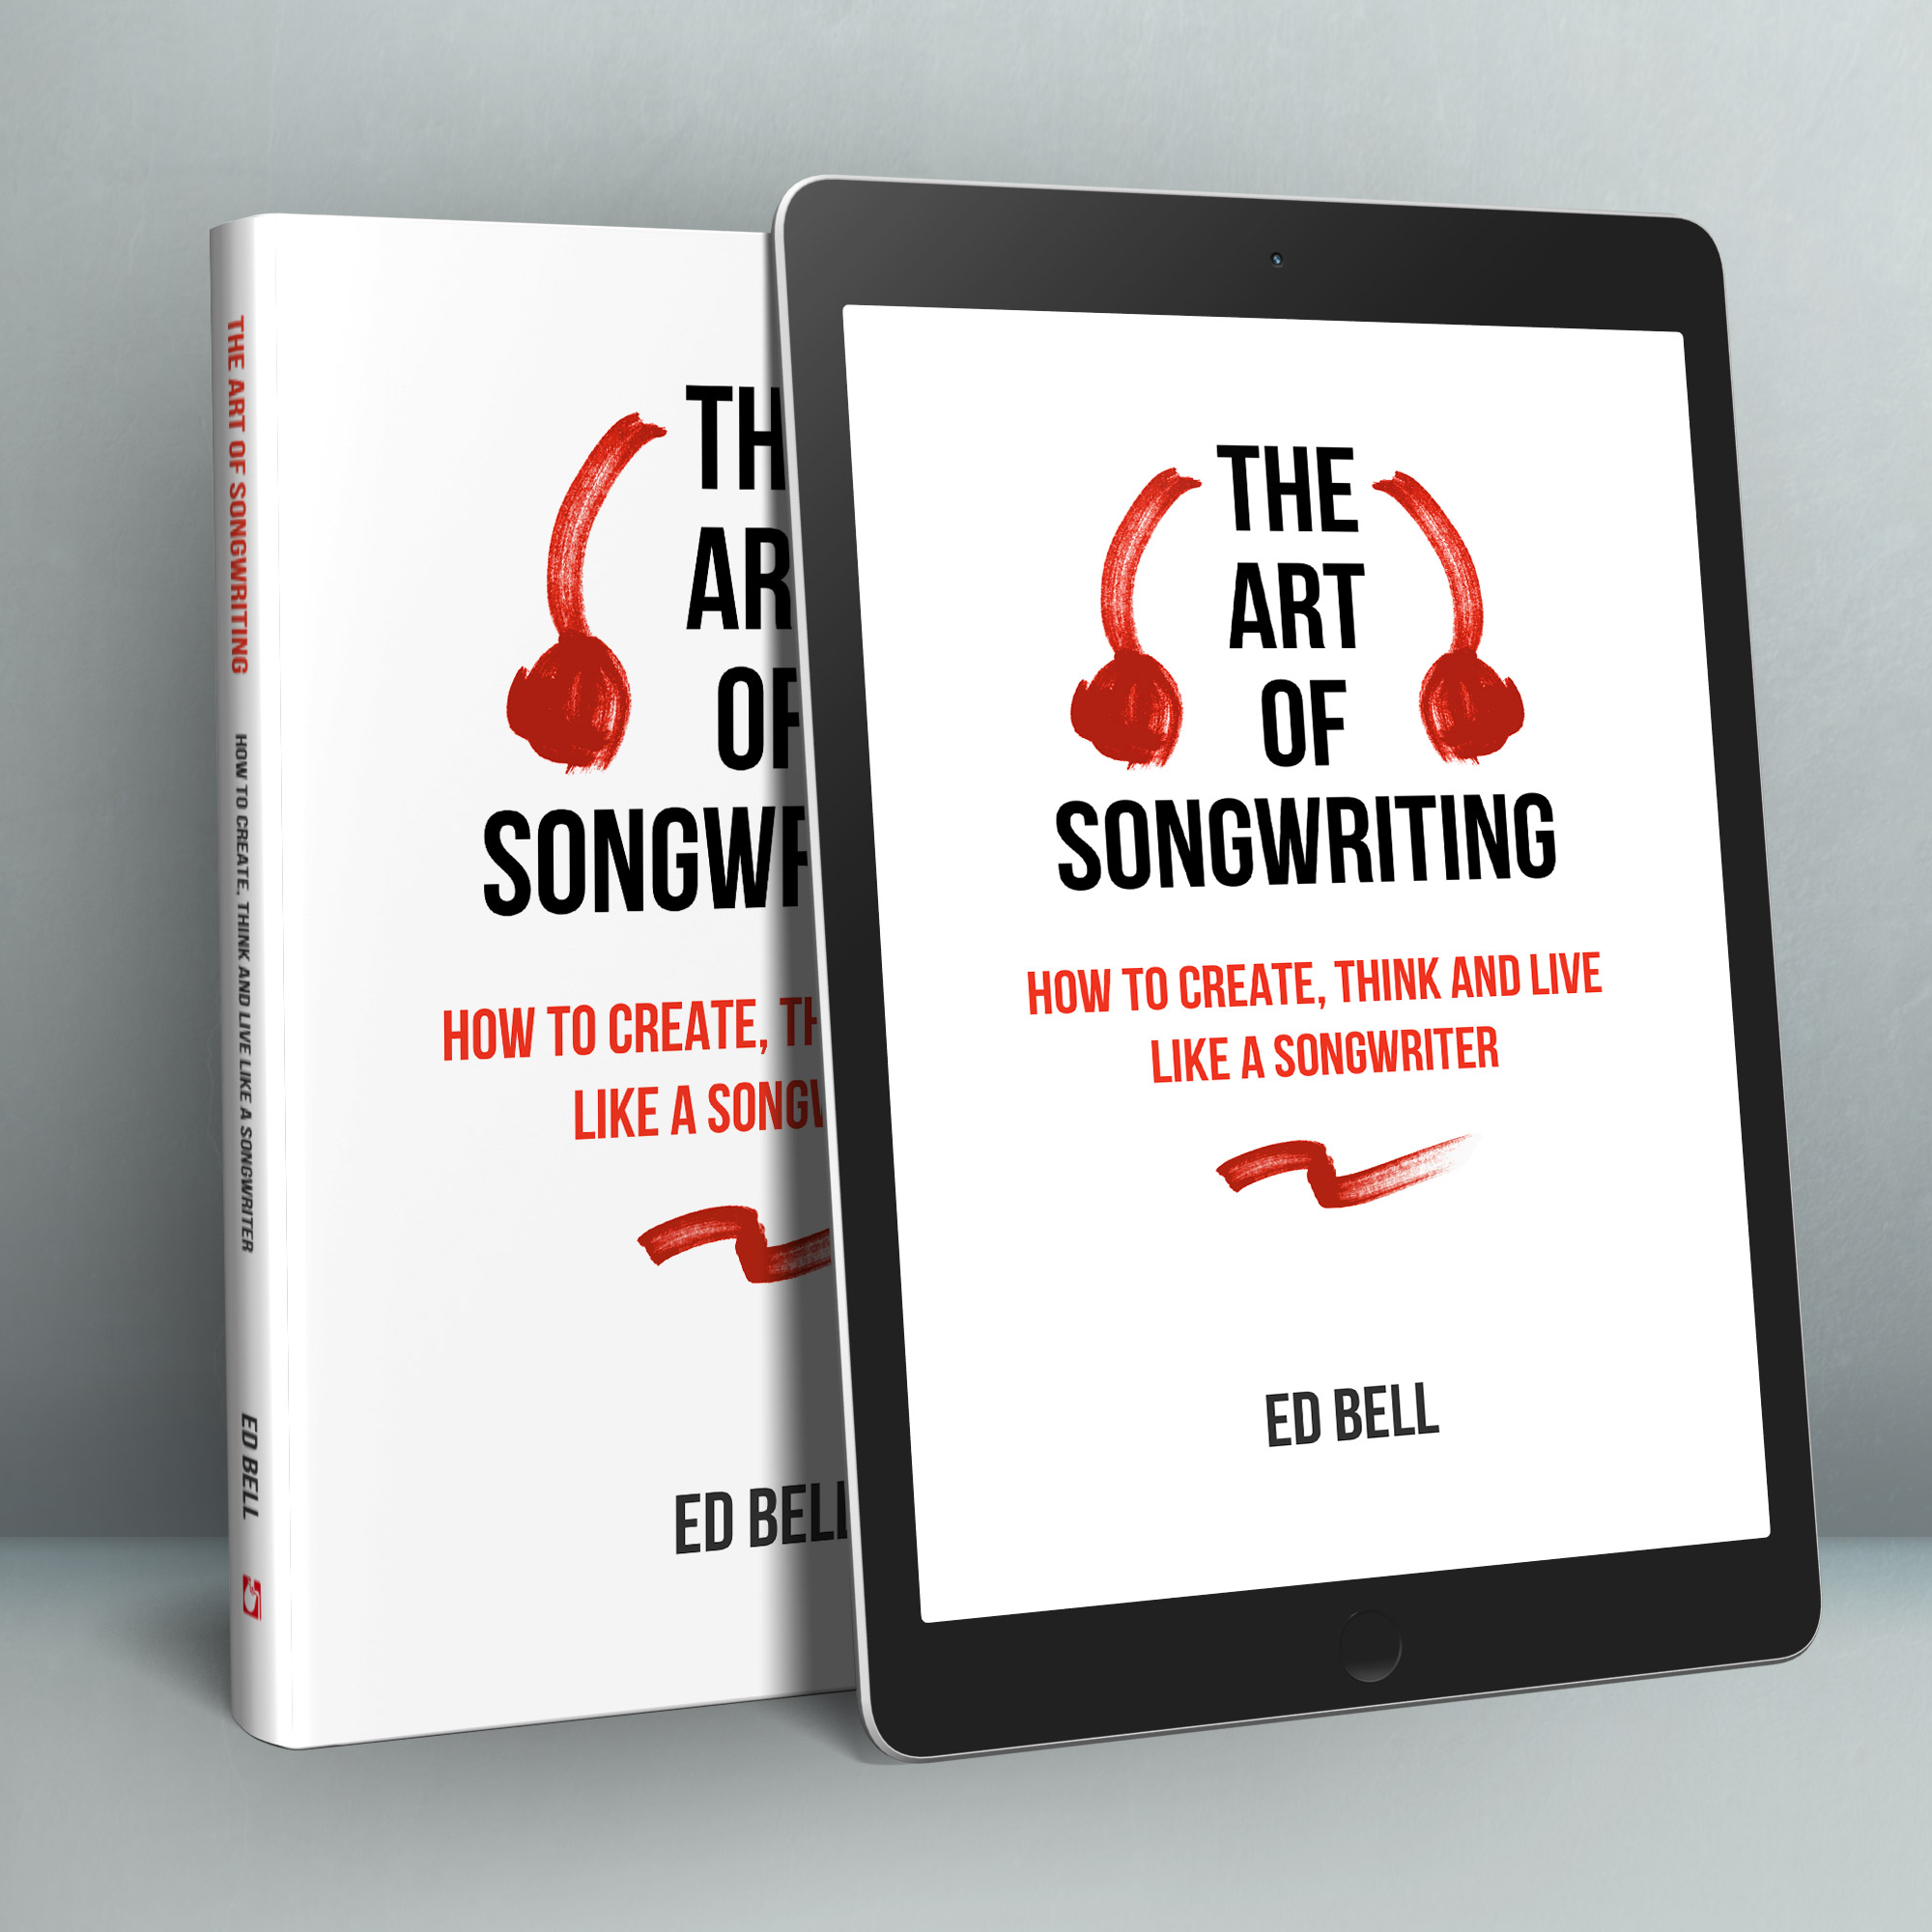 The Art of Songwriting Book. Ed Bell.